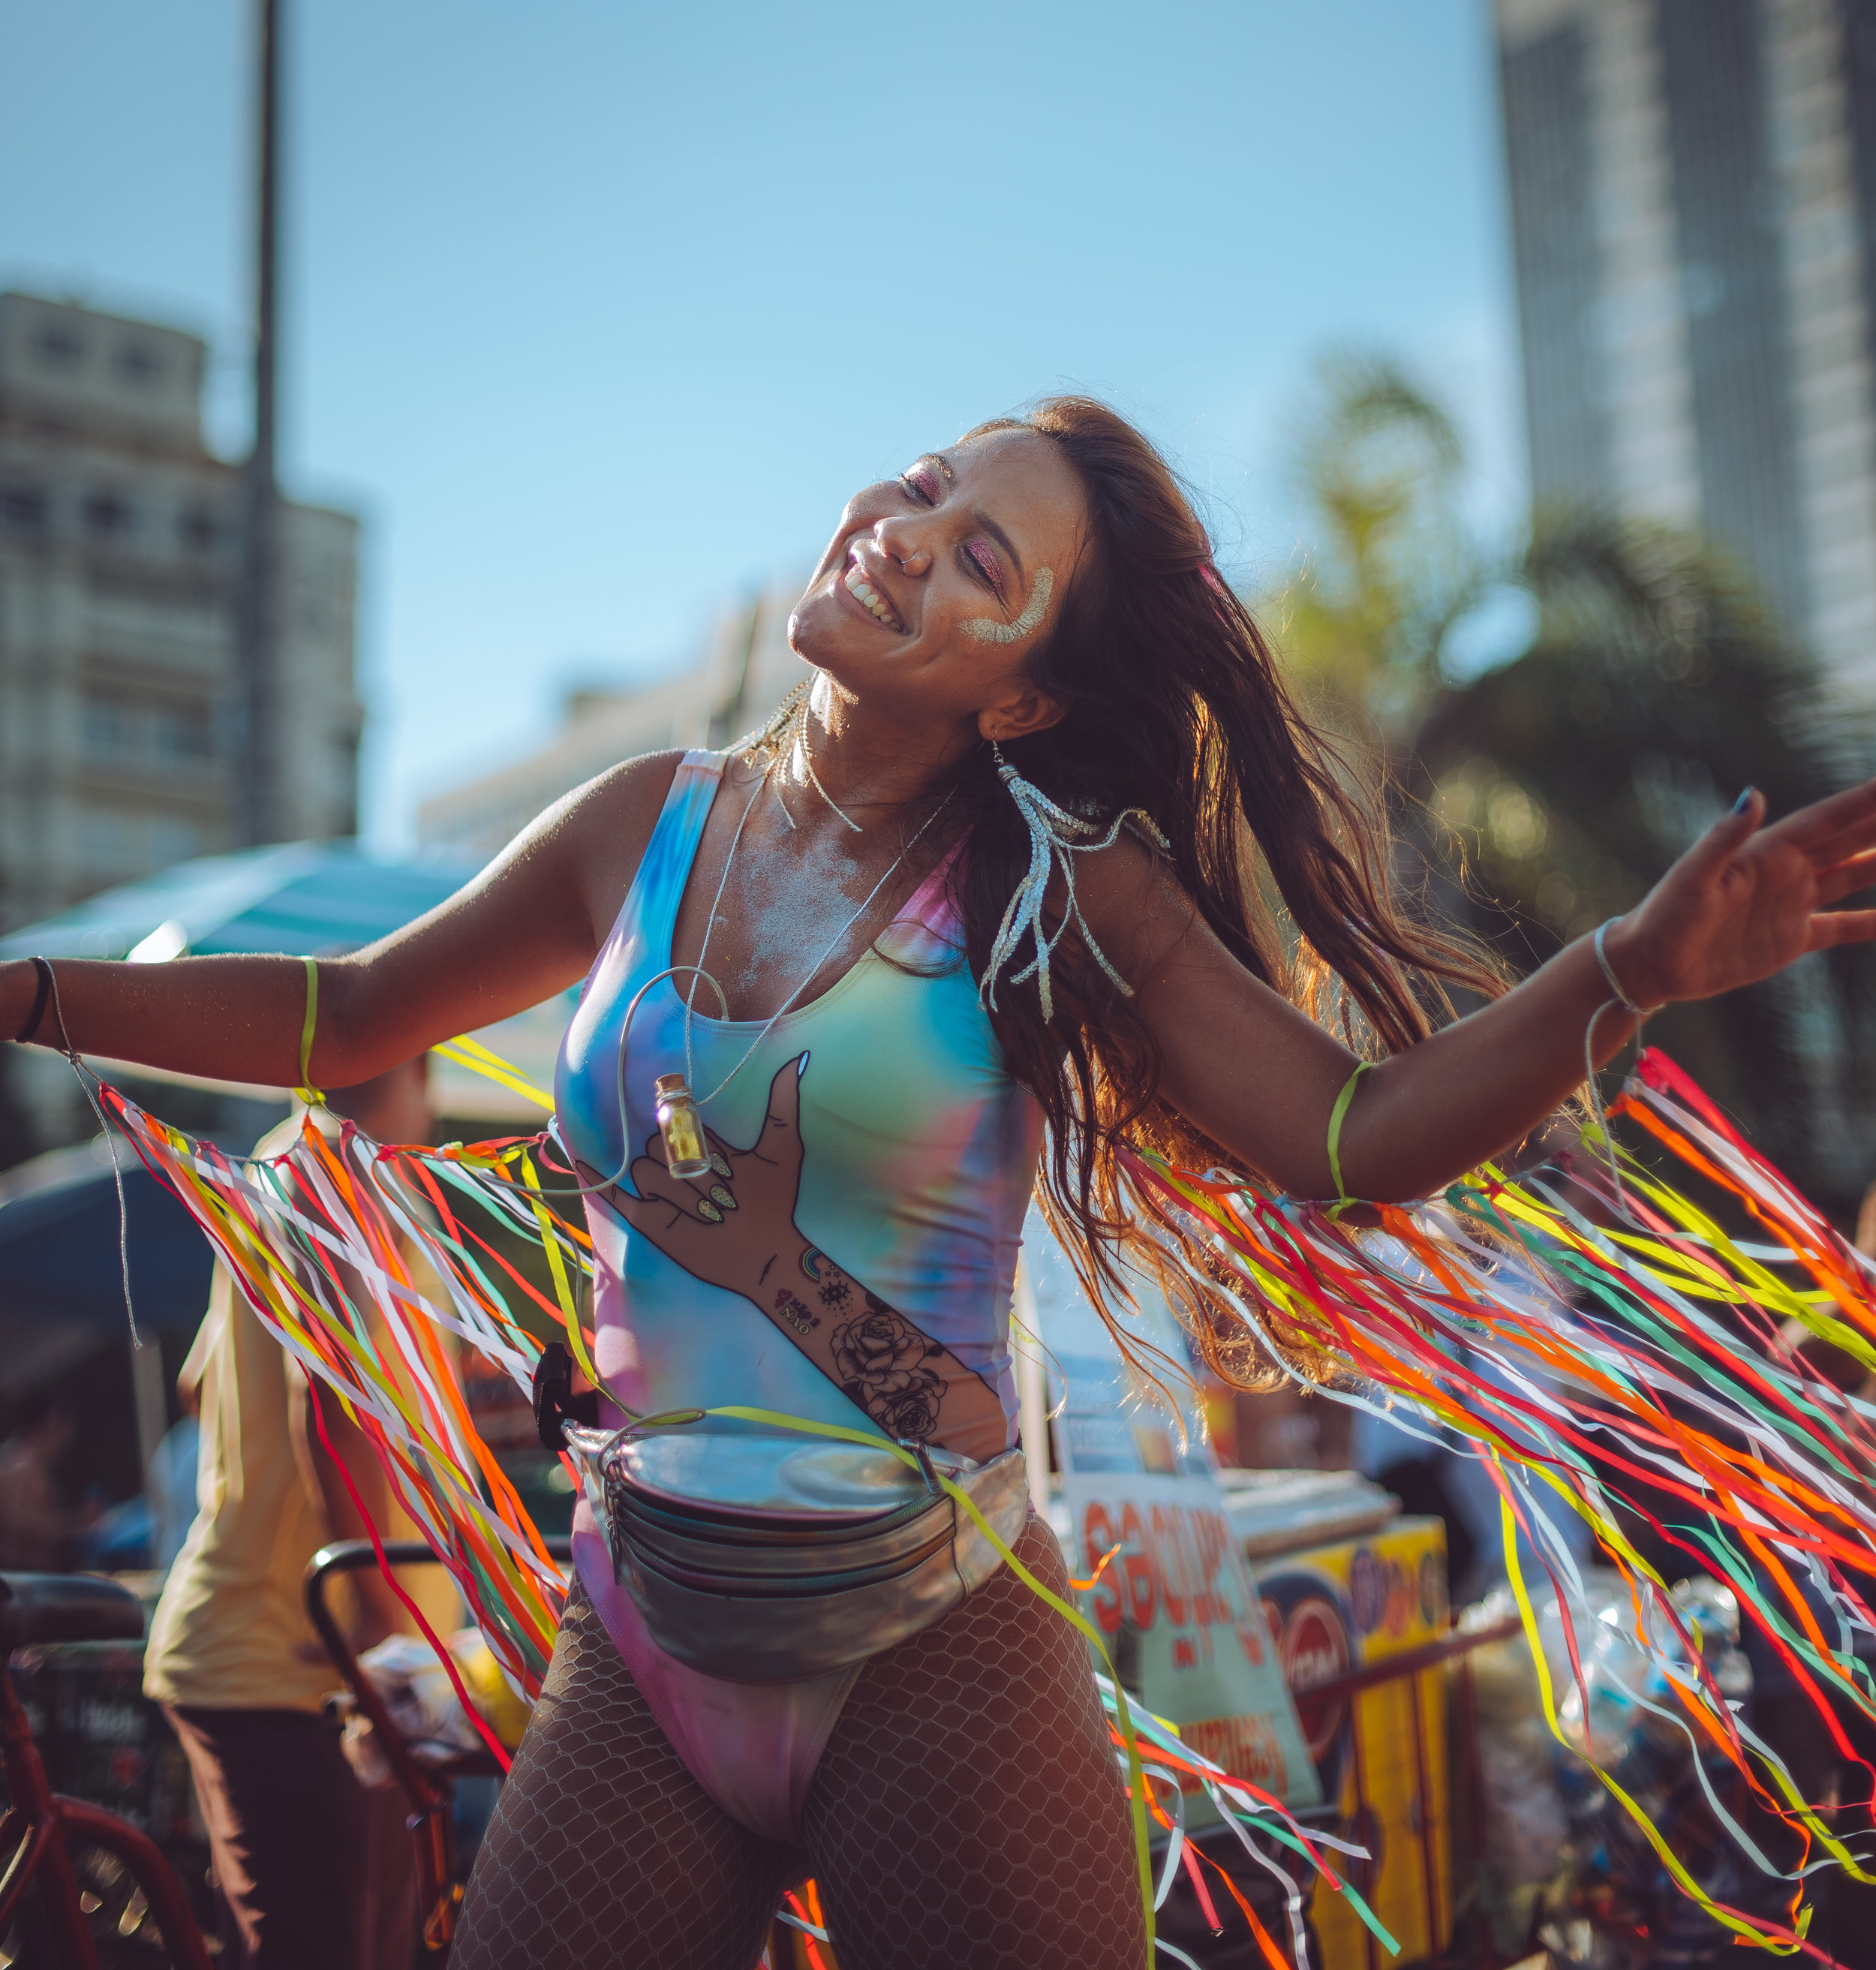 Lost in the music at the Rio Carnival